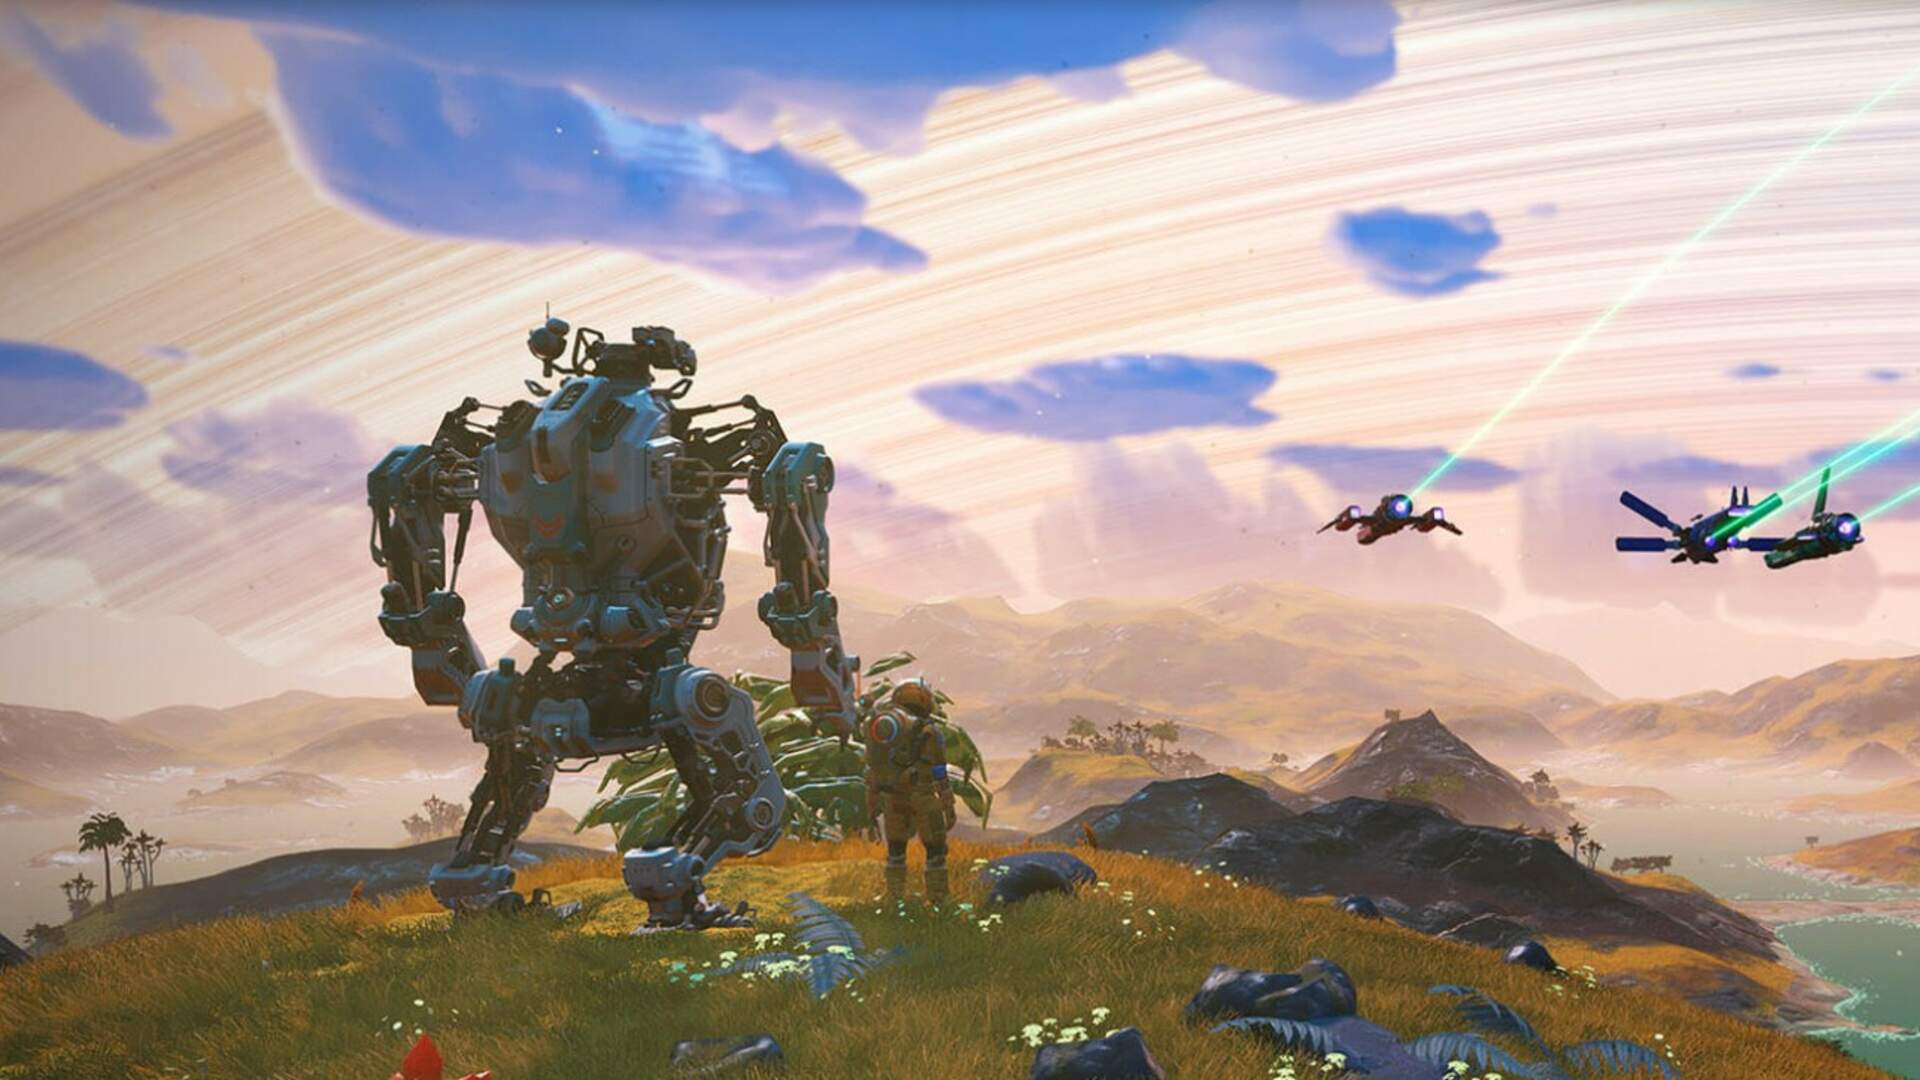 No Man's Sky: How to Get the Exo Mech Suit